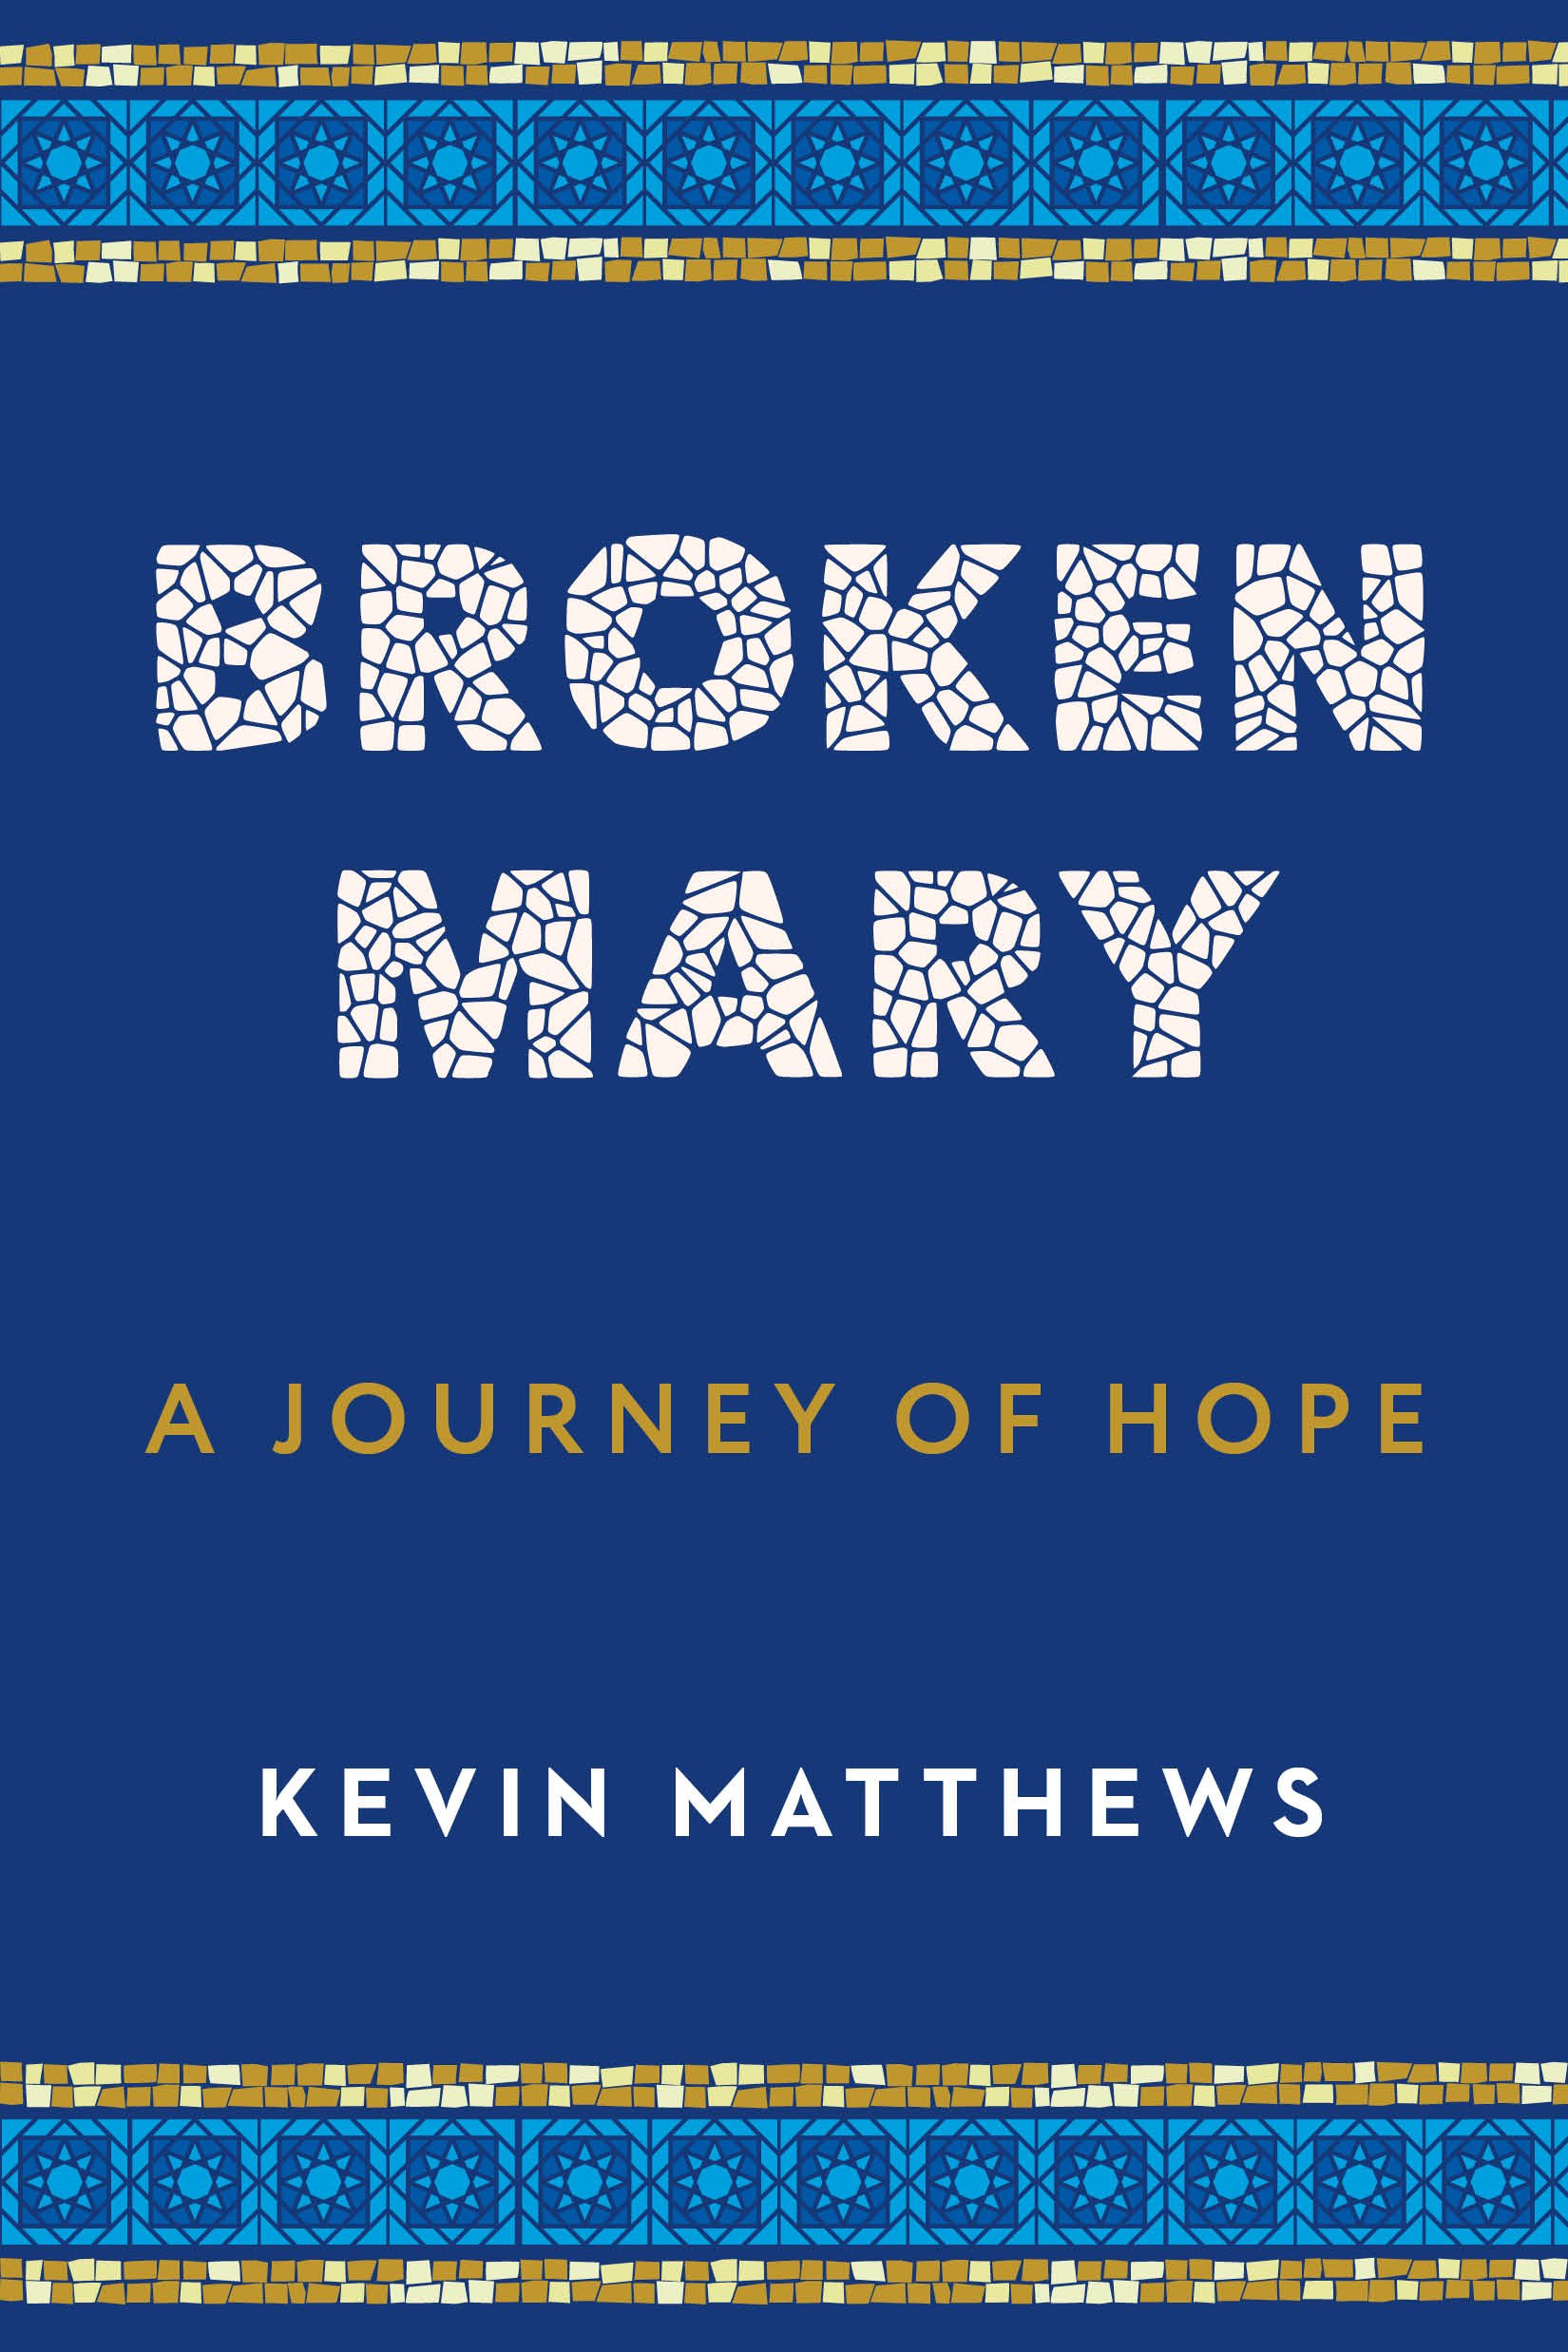 Broken Mary Paperback – February 1, 2017 Kevin Matthews Wellspring 1942611692